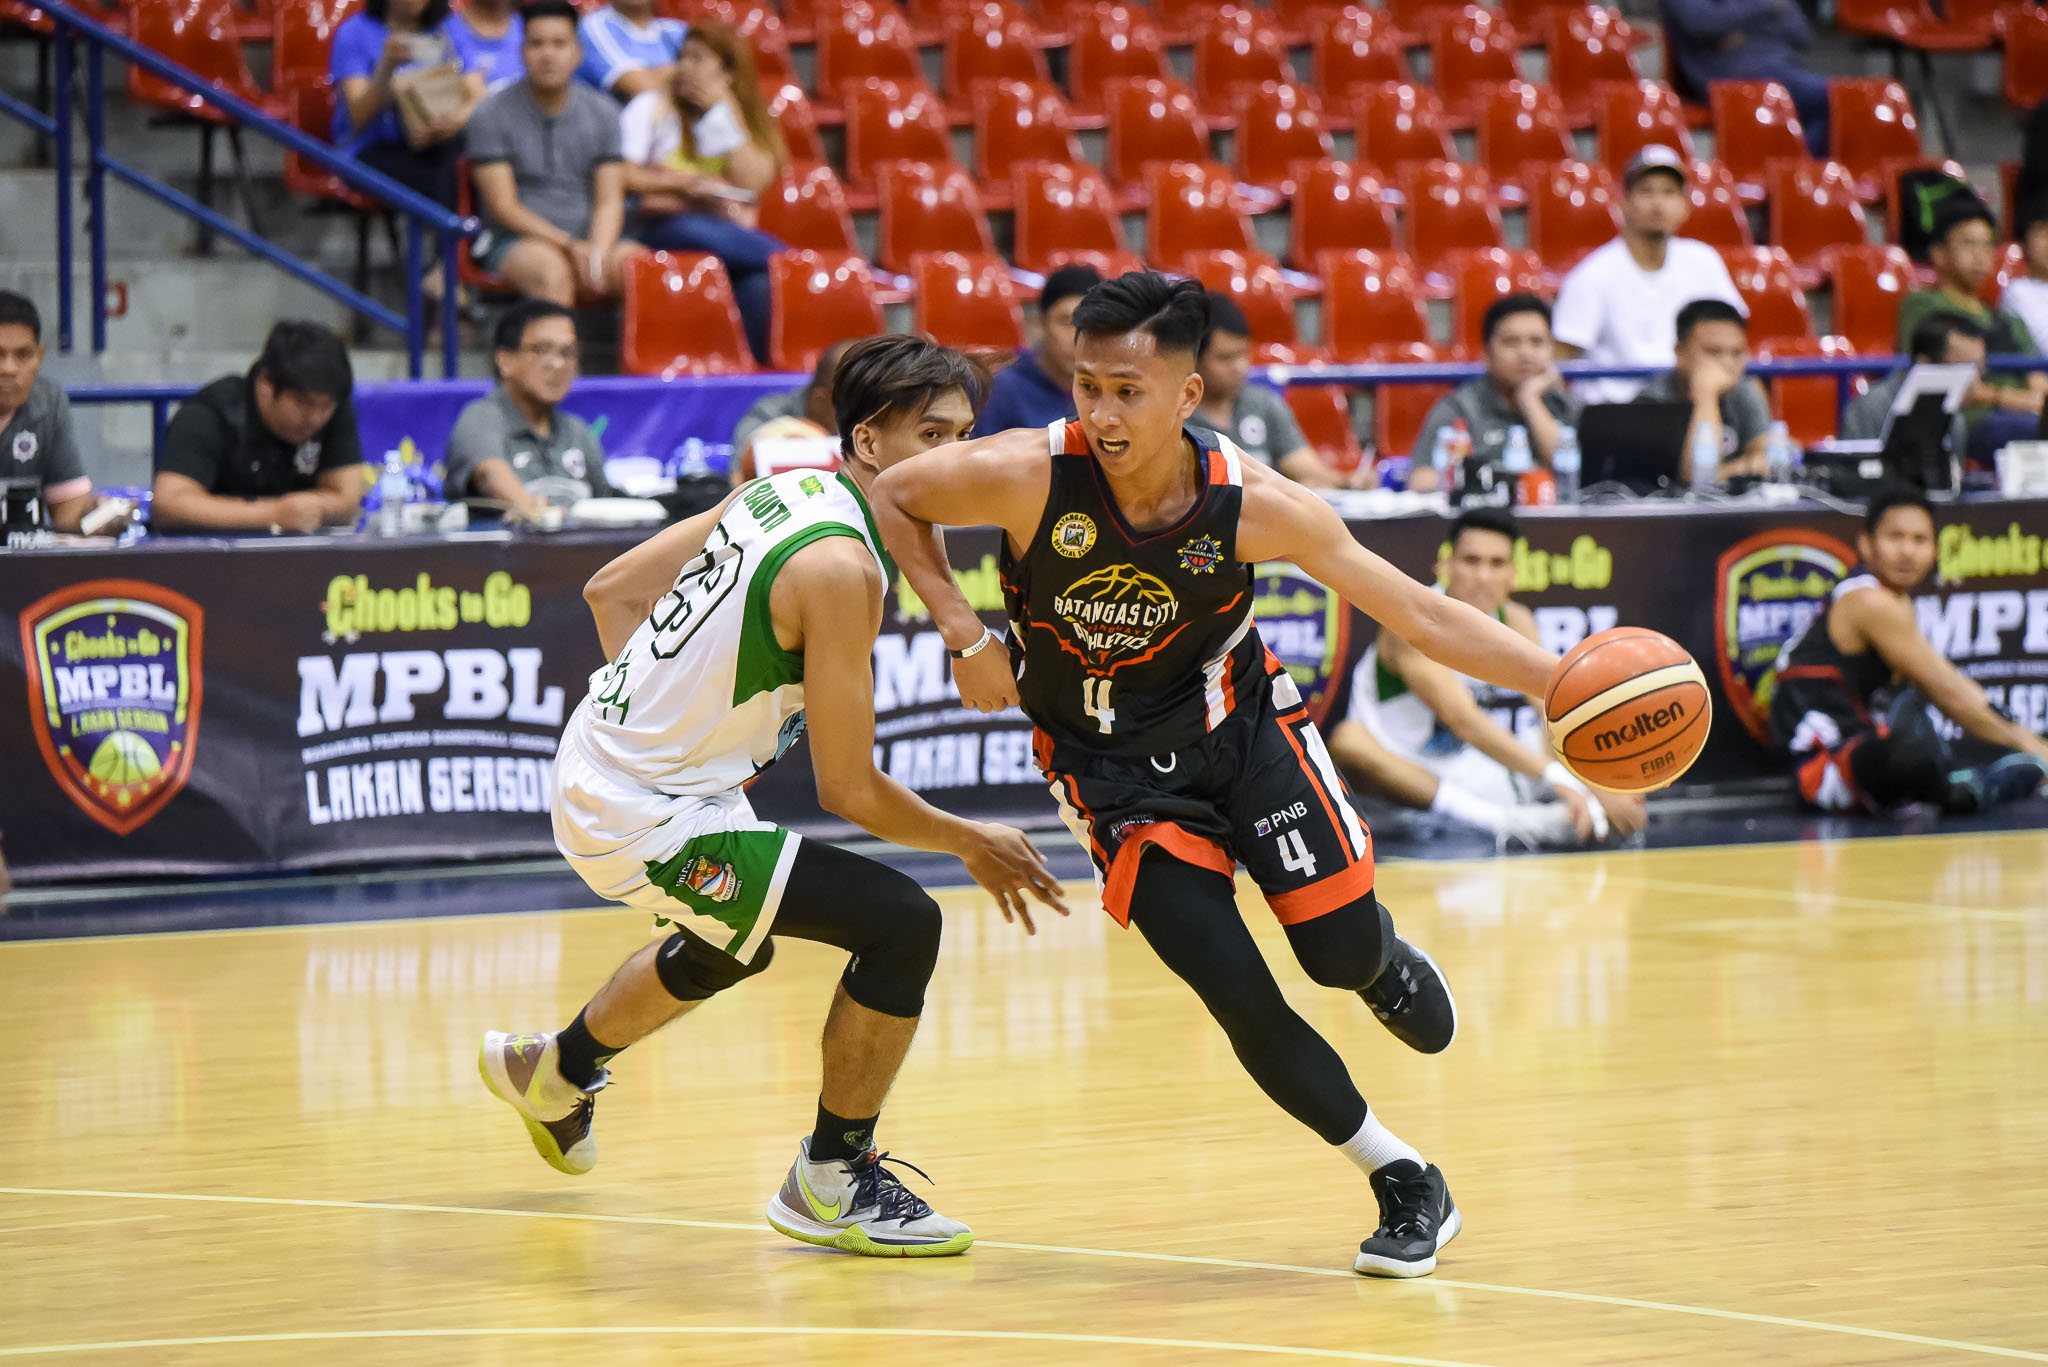 Tiebreaker Times Suerte delivers as Batangas escapes Navotas, creates logjam in MPBL North Basketball MPBL News  Woody Co Ryusei Koga Rey Suerte Navotas Clutch-Unipak Mark Guillen Jeff Viernes Jason Melano Elmer Cabahug Batangas City-Tanduay Athletics 2019-20 MPBL Lakan Cup